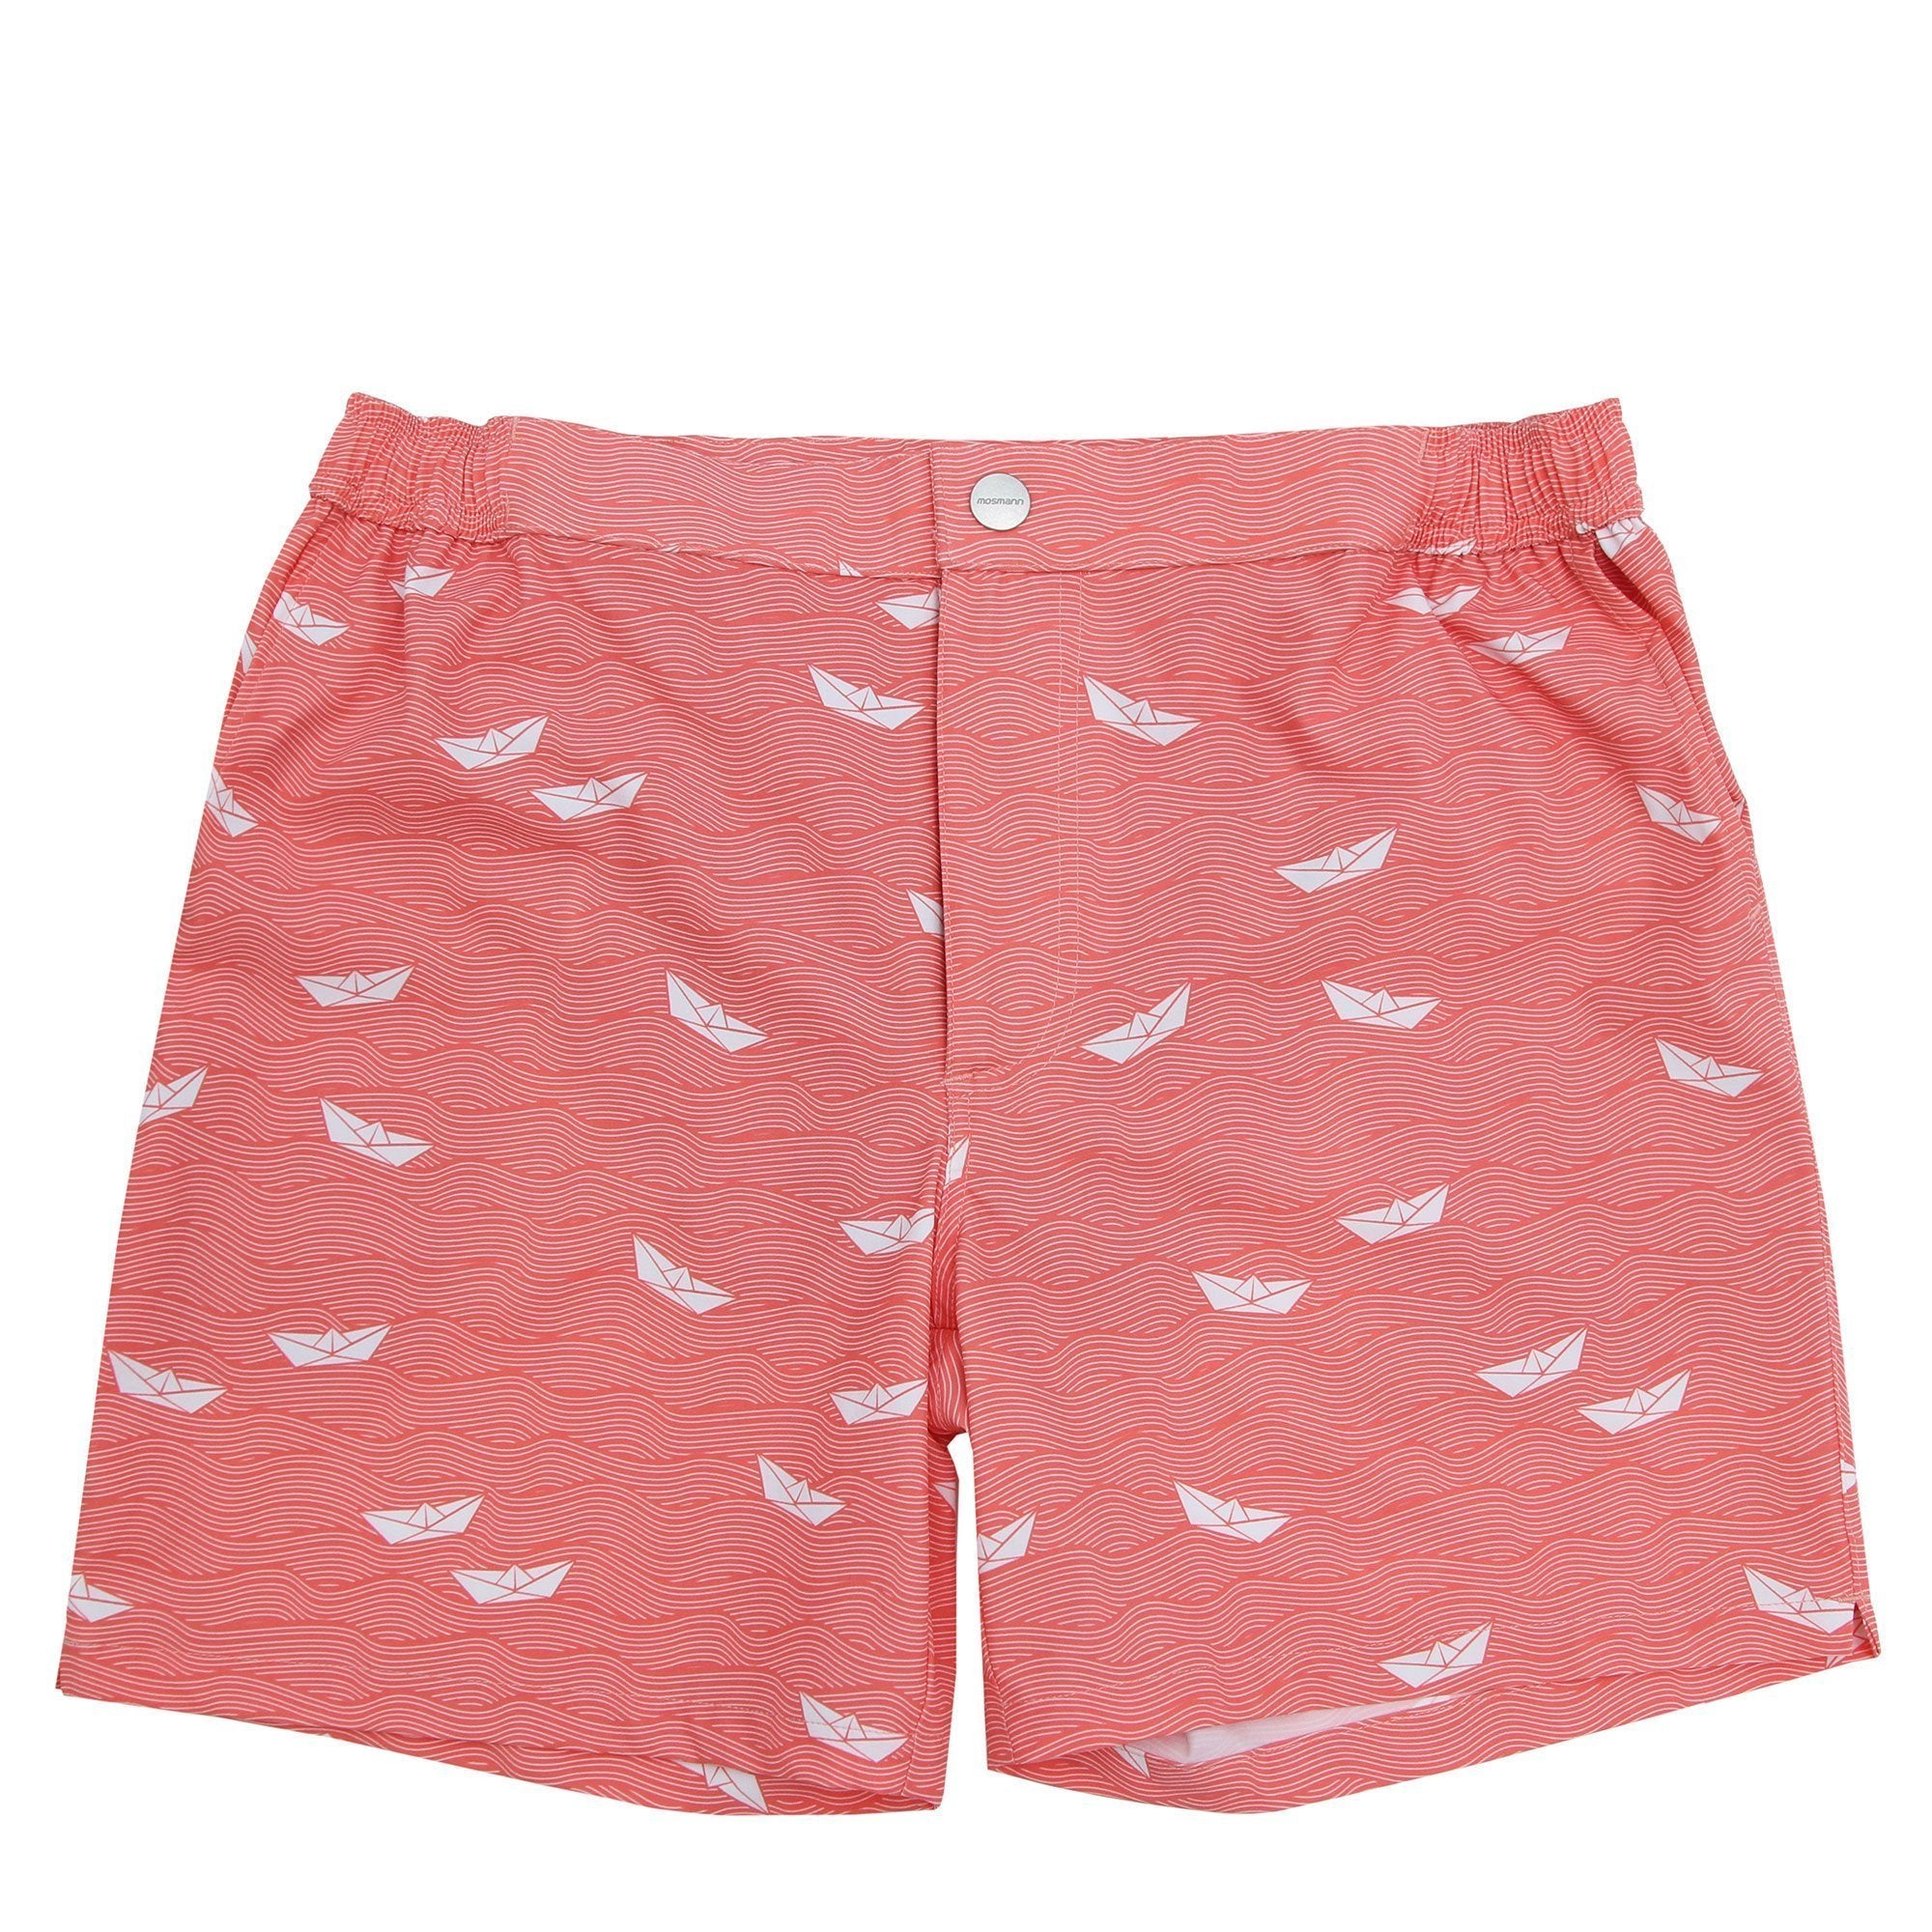 Paper-Boat-Swim-Shorts-Front-View.jpg